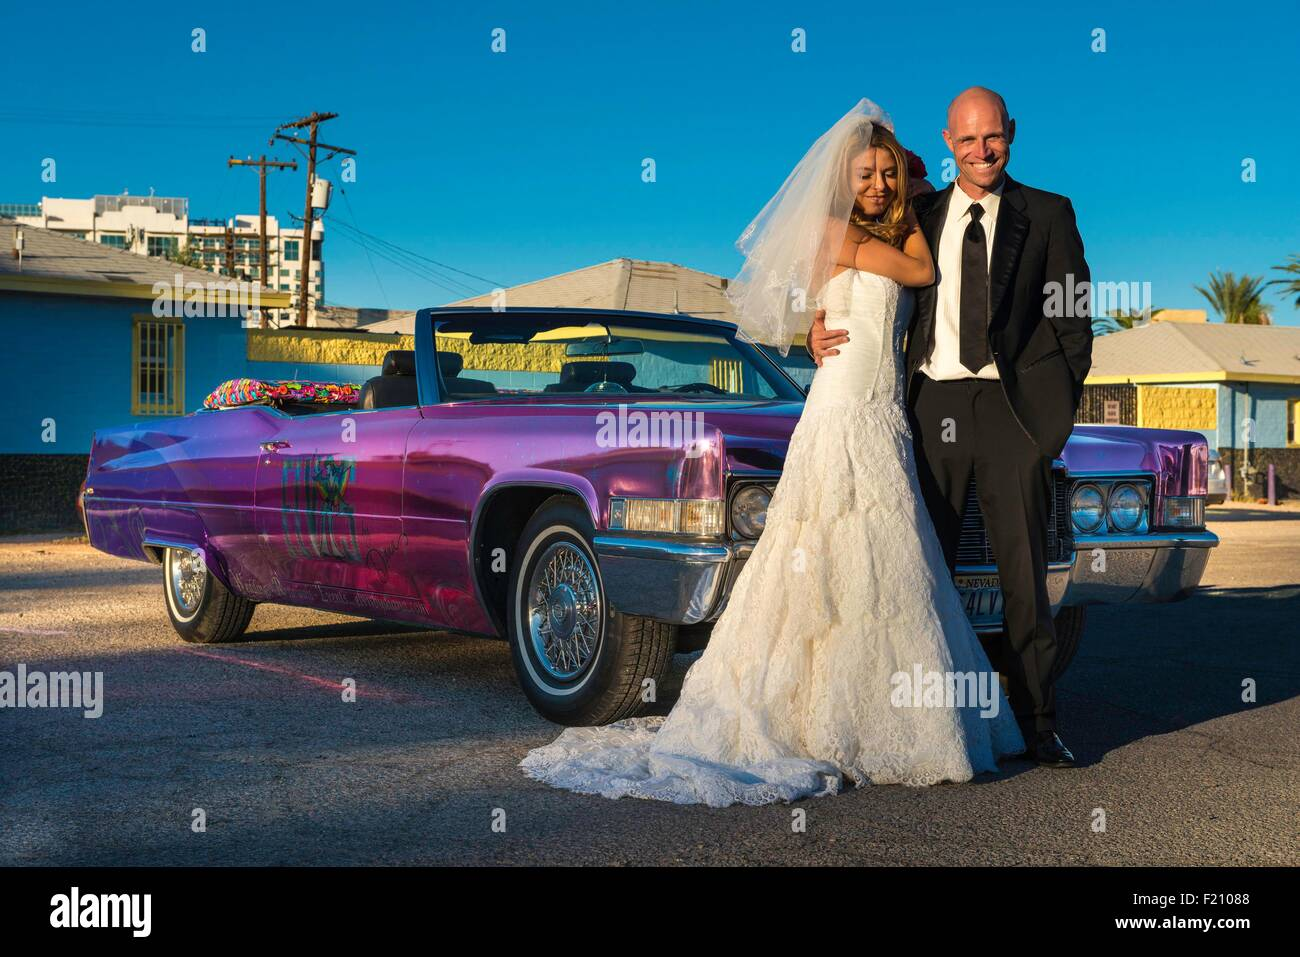 United States, Nevada, the Strip, newly wed in a Limousine - Stock Image